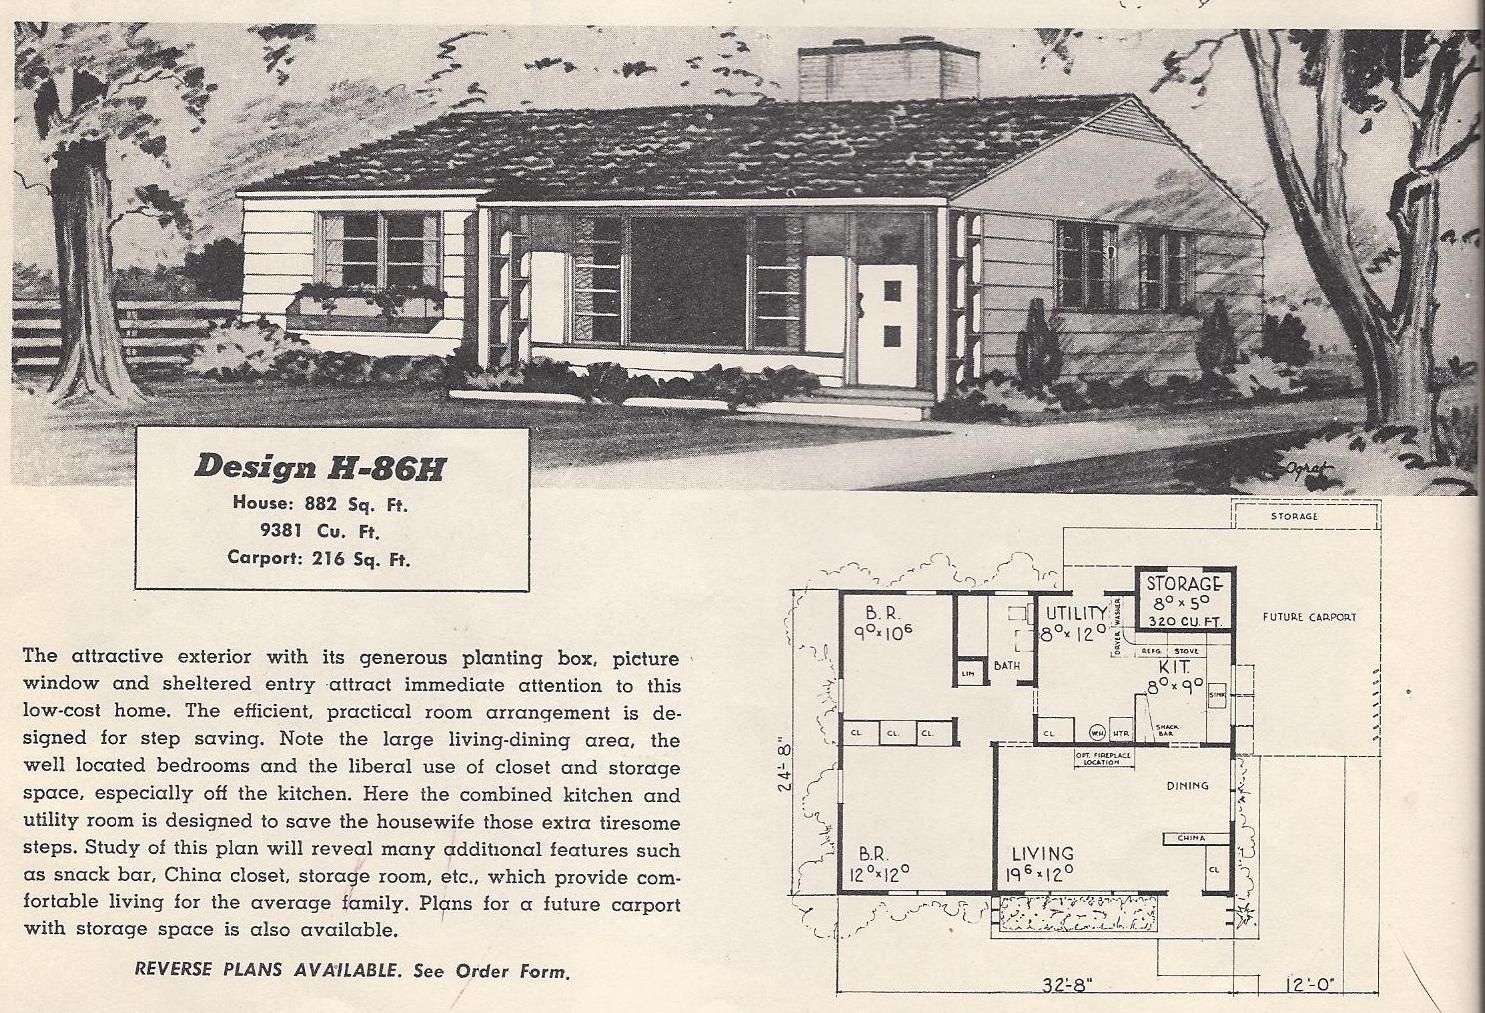 Vintage house plans 86h antique alter ego for Vintage ranch house plans